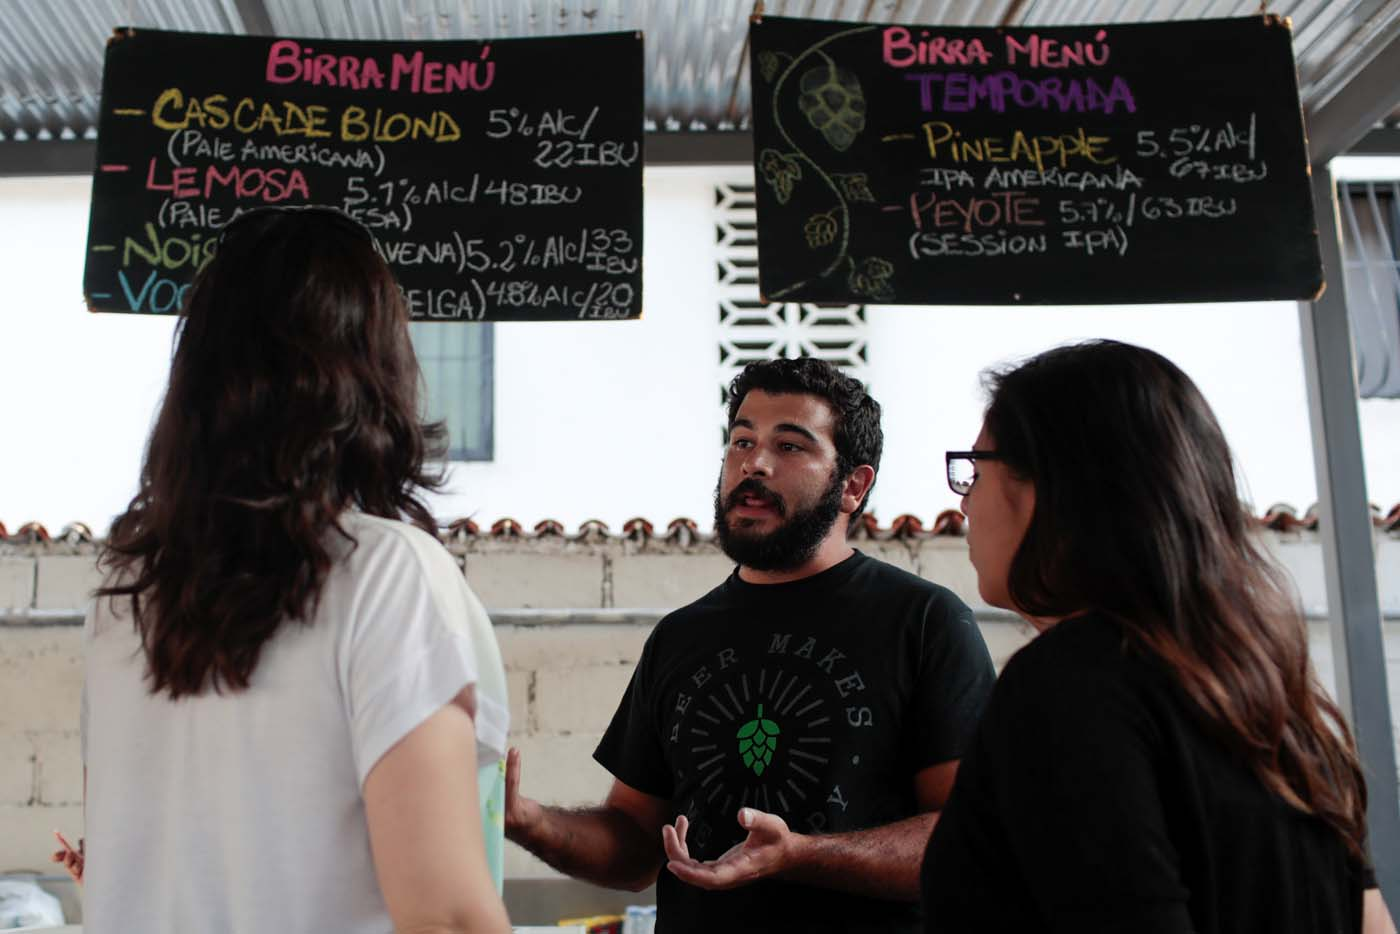 Victor Querales (C), one of the owners of Social Club brewery, explains to customers the variety of craft beers on offer in a beer garden at the garage of his brewery in Caracas, Venezuela September 15, 2017. Picture taken September 15, 2017. REUTERS/Marco Bello